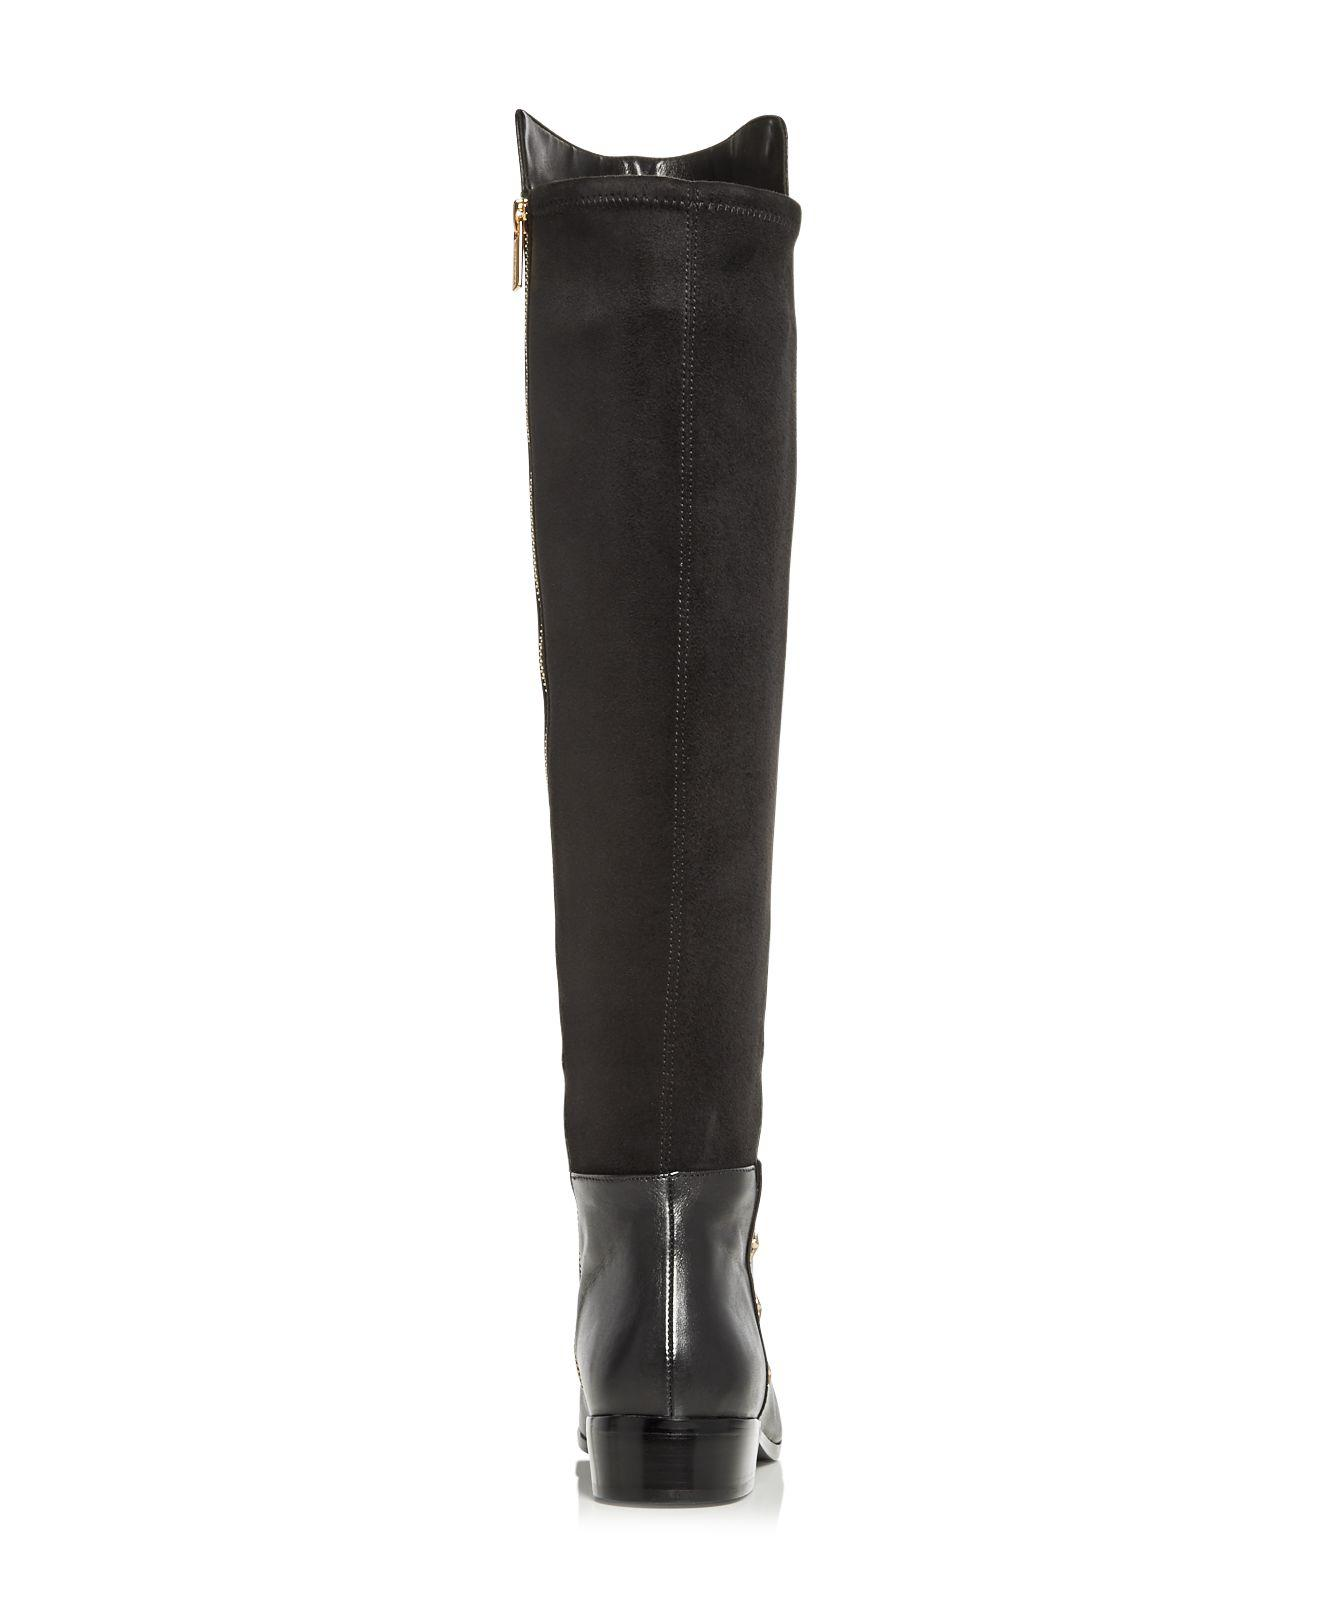 MICHAEL Michael Kors Women's Bromley Leather & Suede Embellished Tall Boots in Black